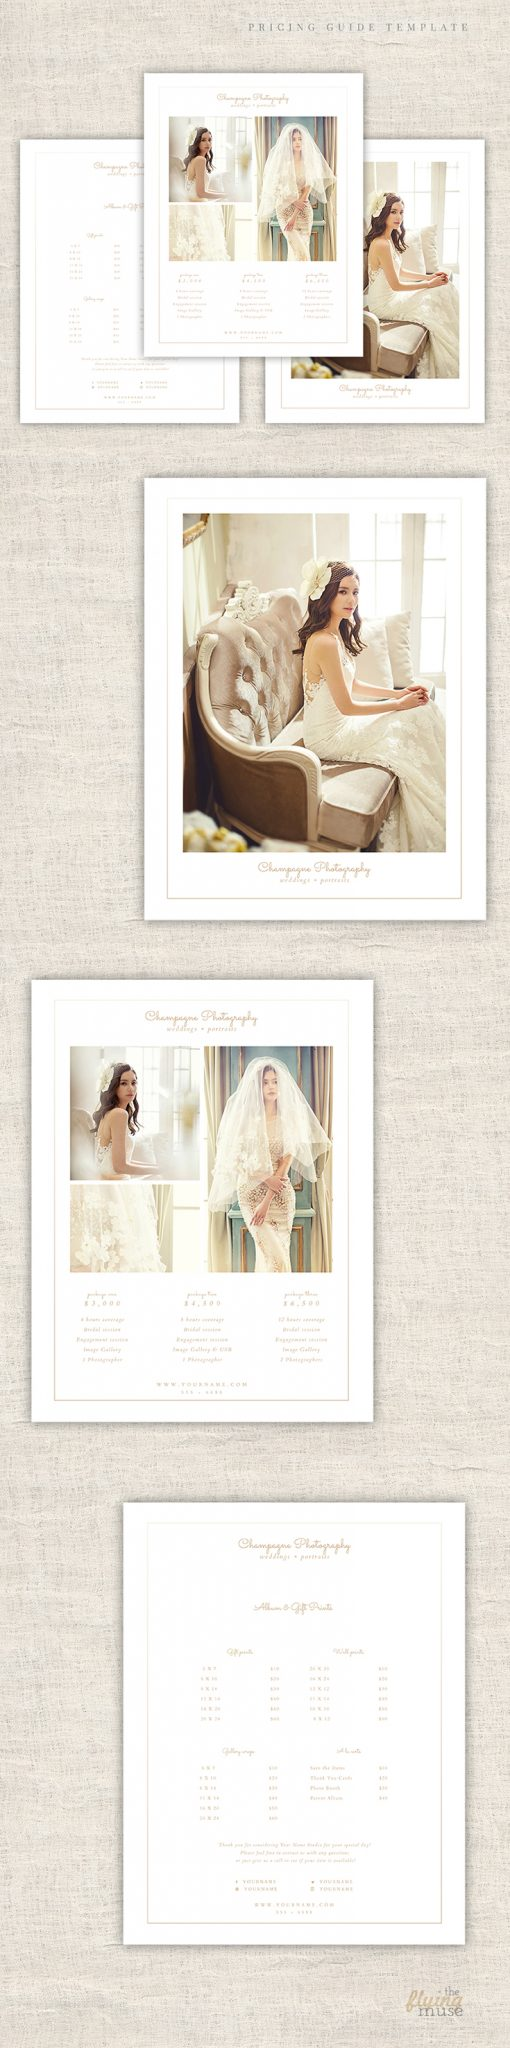 Minimal Wedding Pricing Guide Template